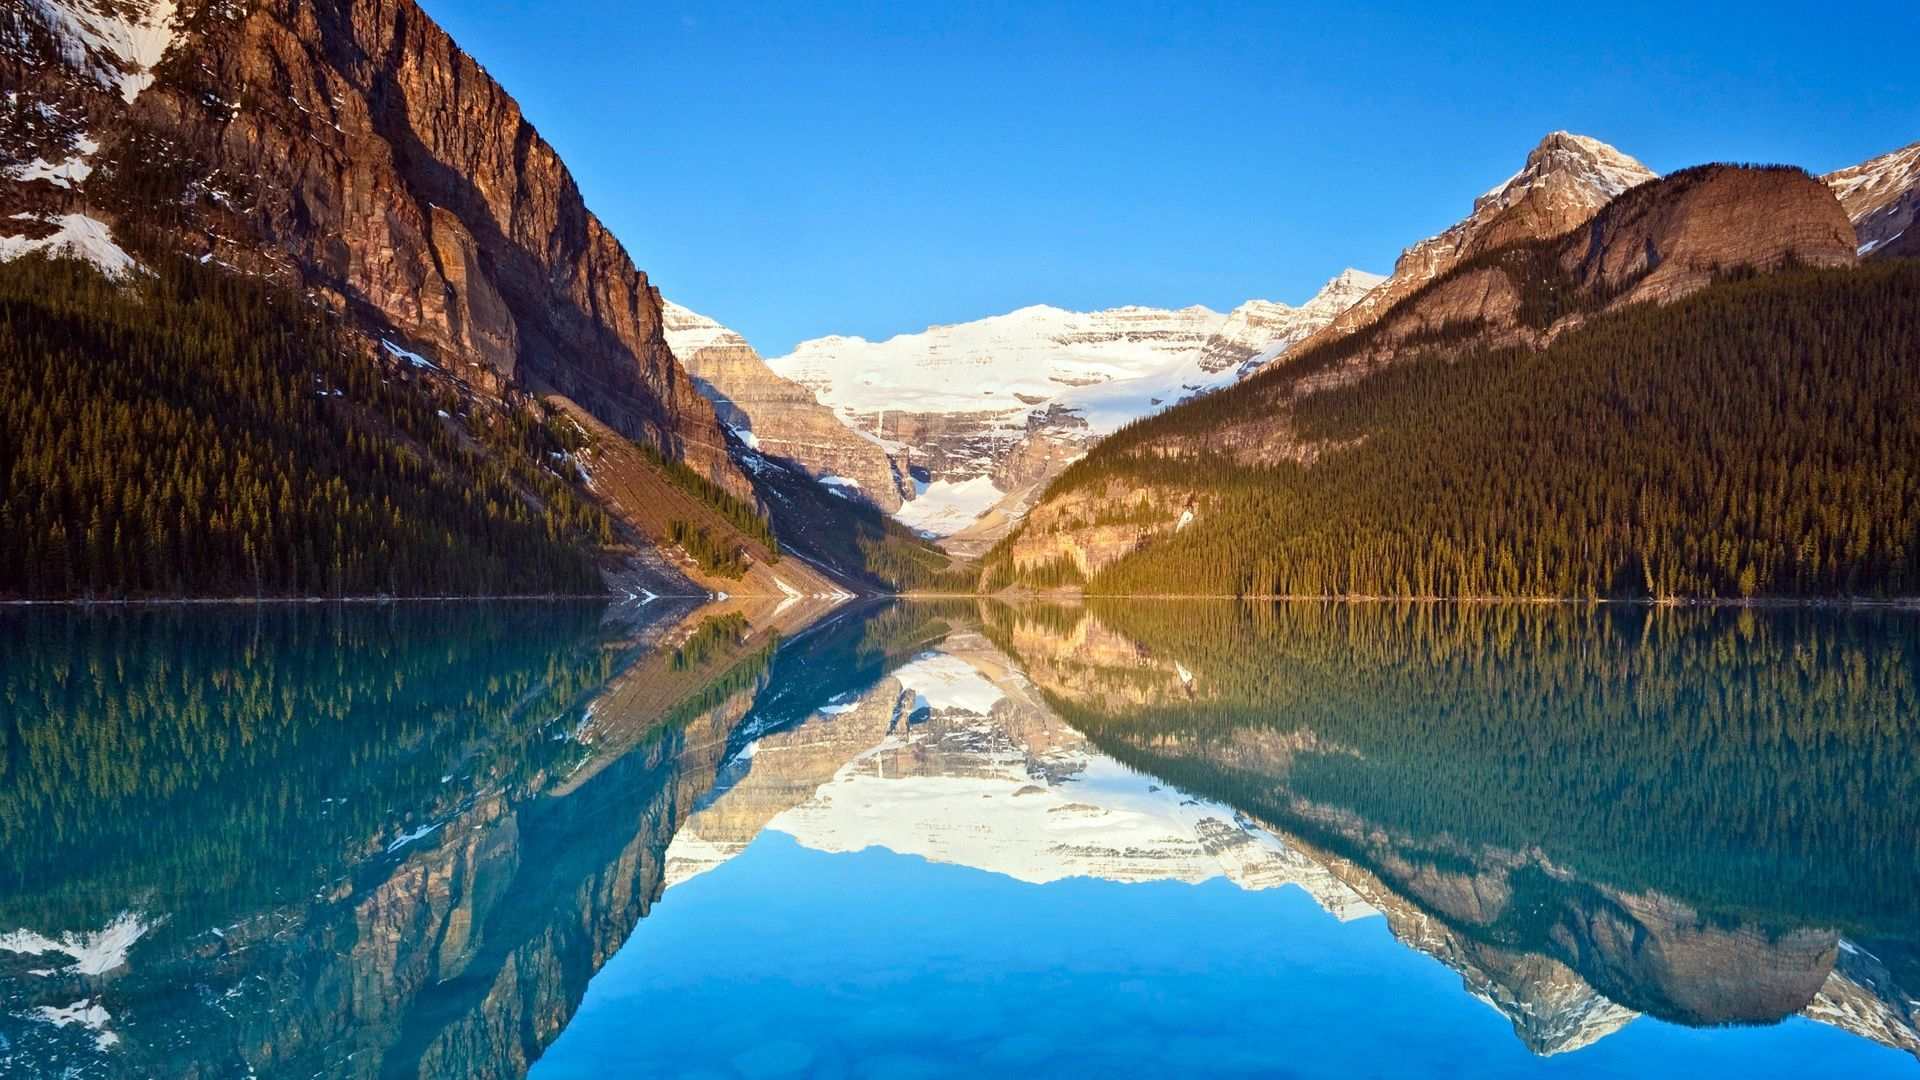 Animals 19201080 Full Hd Wallpapers 1080p Wallpapers Lake Louise Reflection 4k In 2020 Hd Nature Wallpapers Landscape Wallpaper Nature Background Images